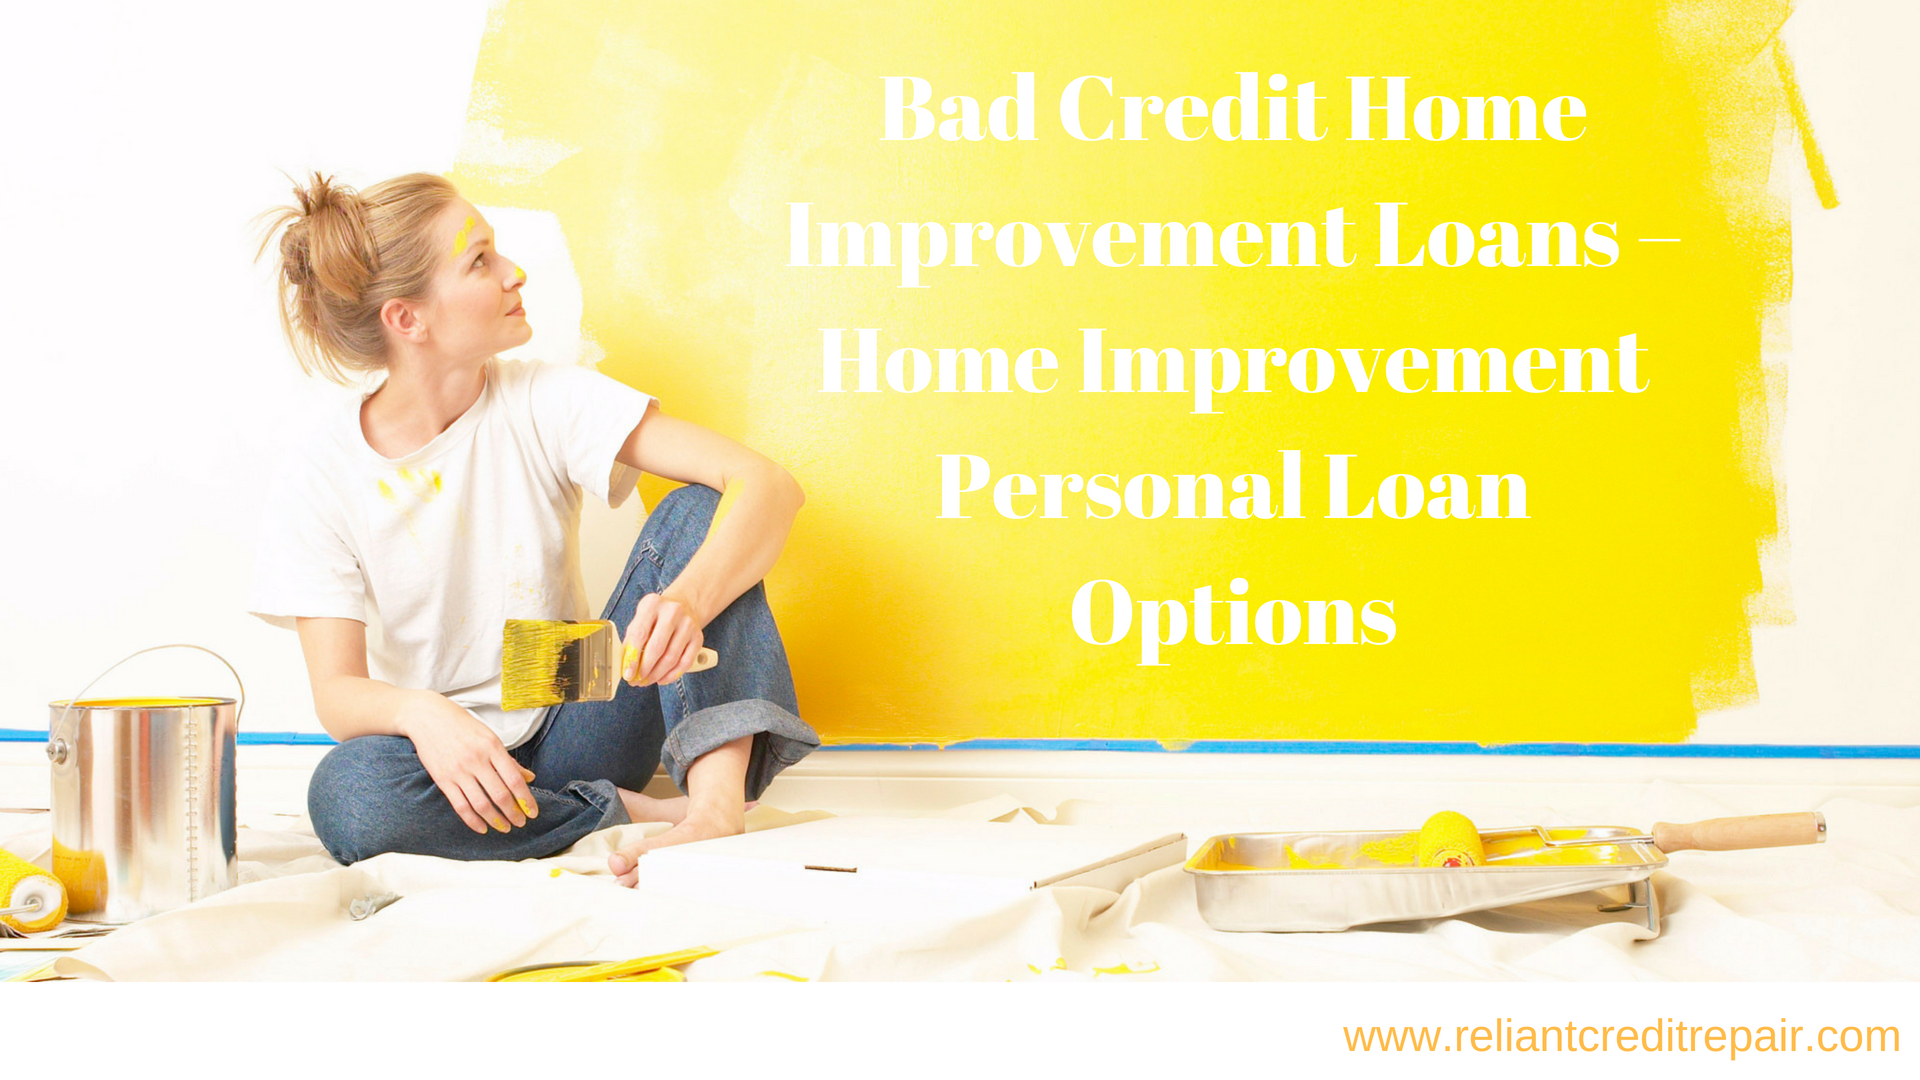 Bad Credit Home Improvement Loans